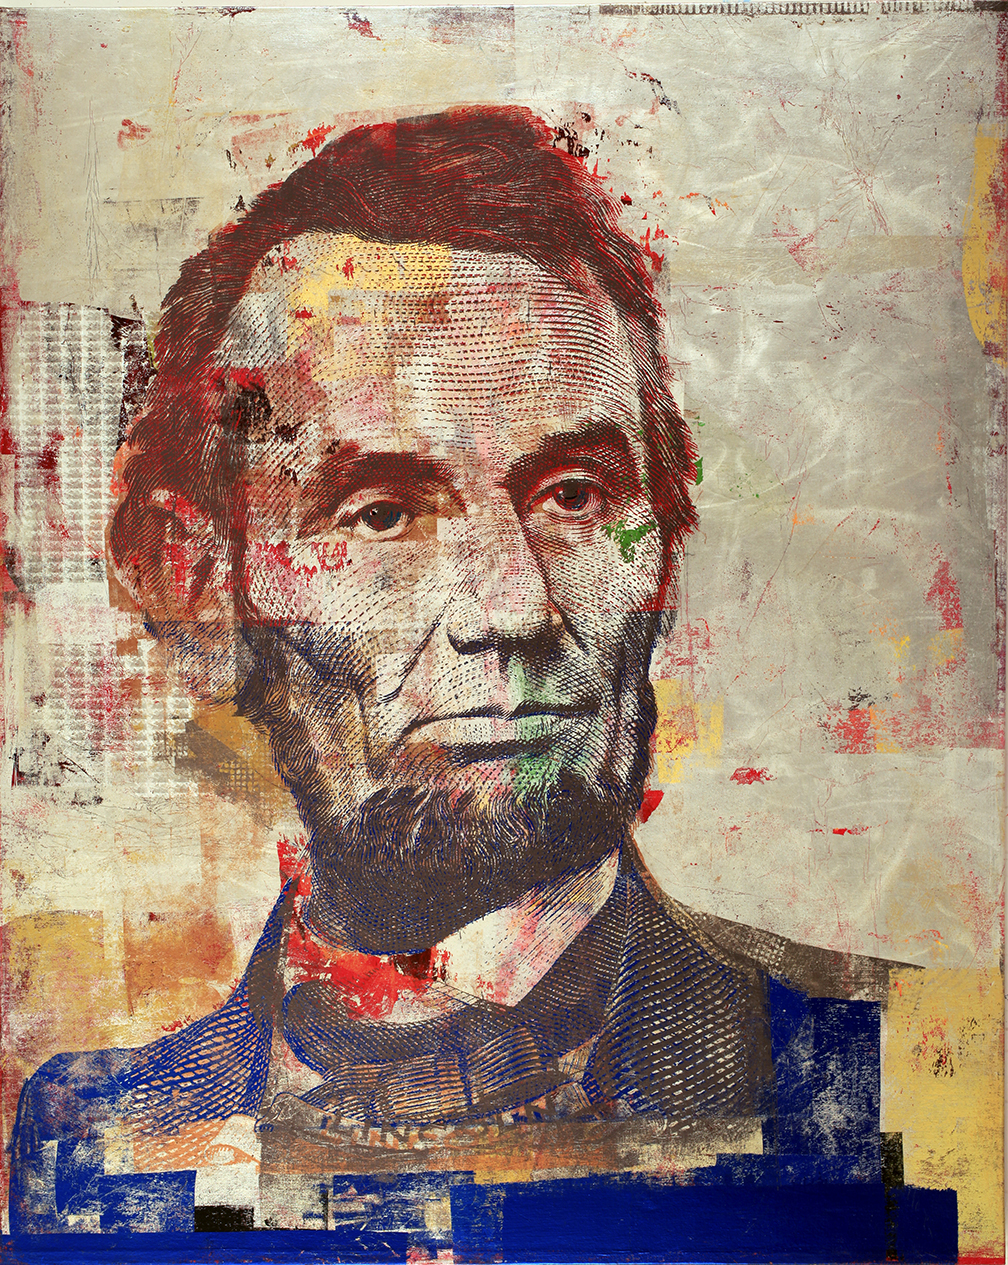 5Dollars Abe Lincoln 60 by 48 2016